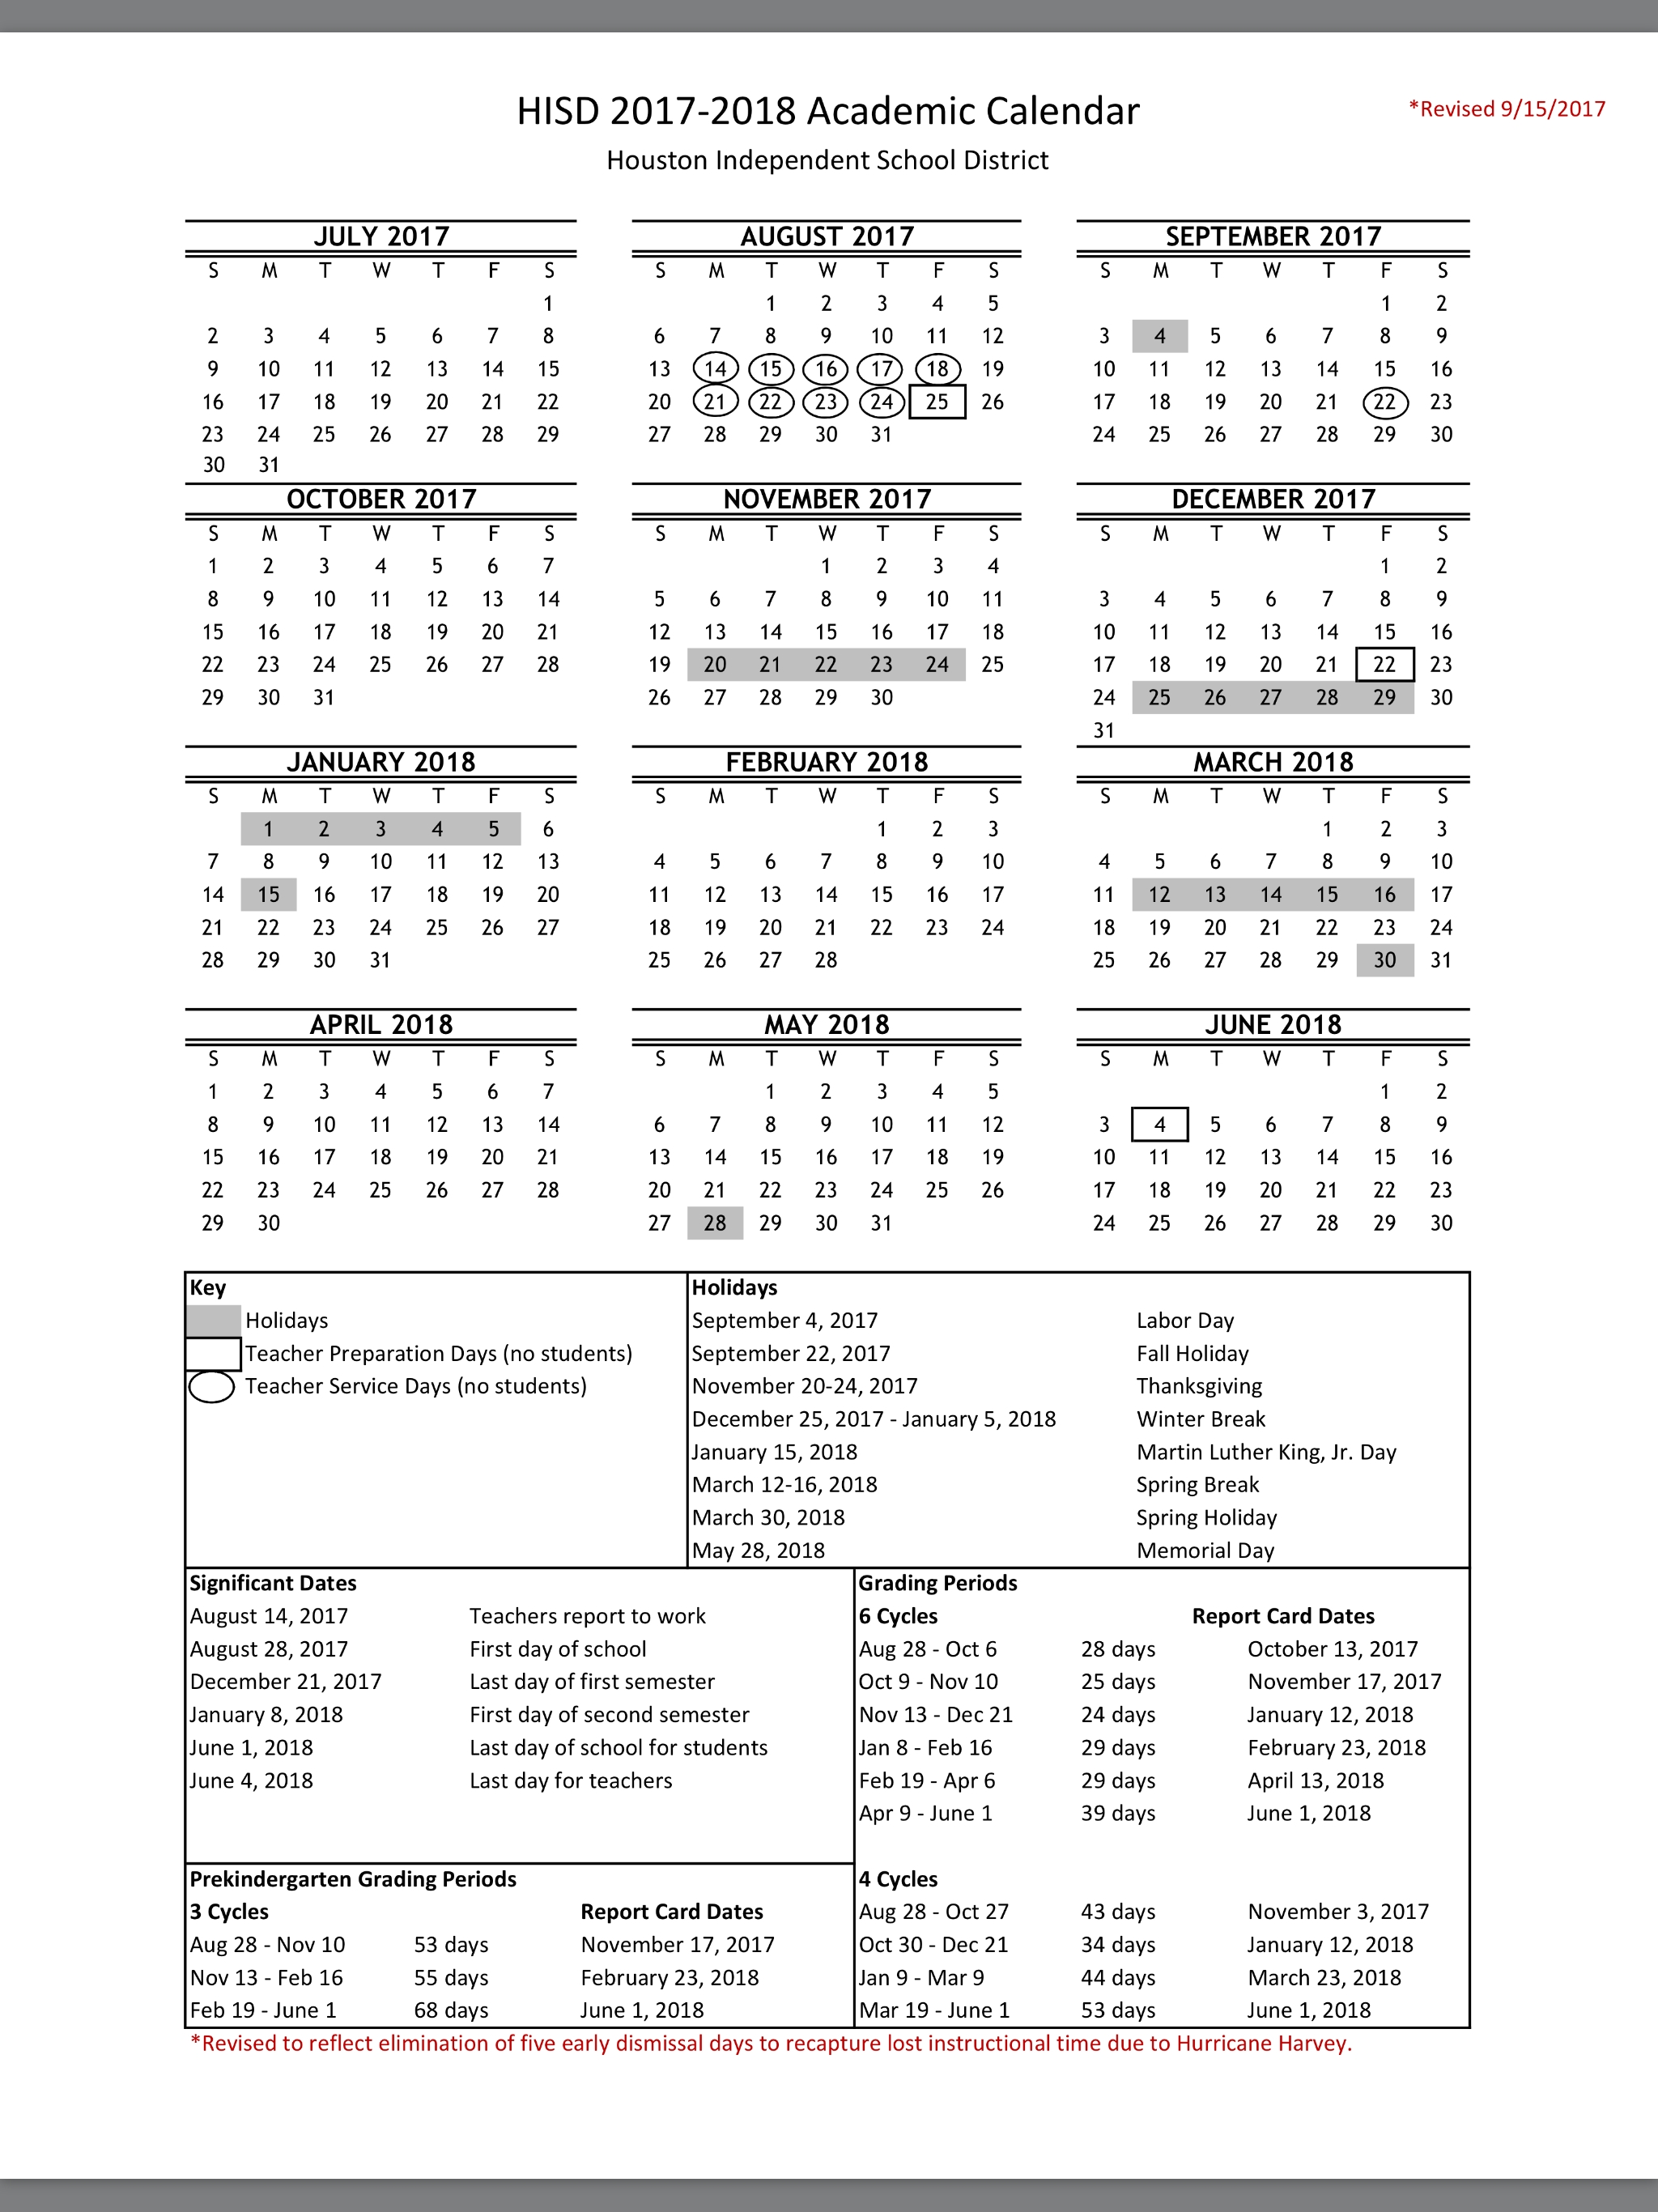 No More Early Dismissal Days Heres The New Hisd 2017 18 Calendar